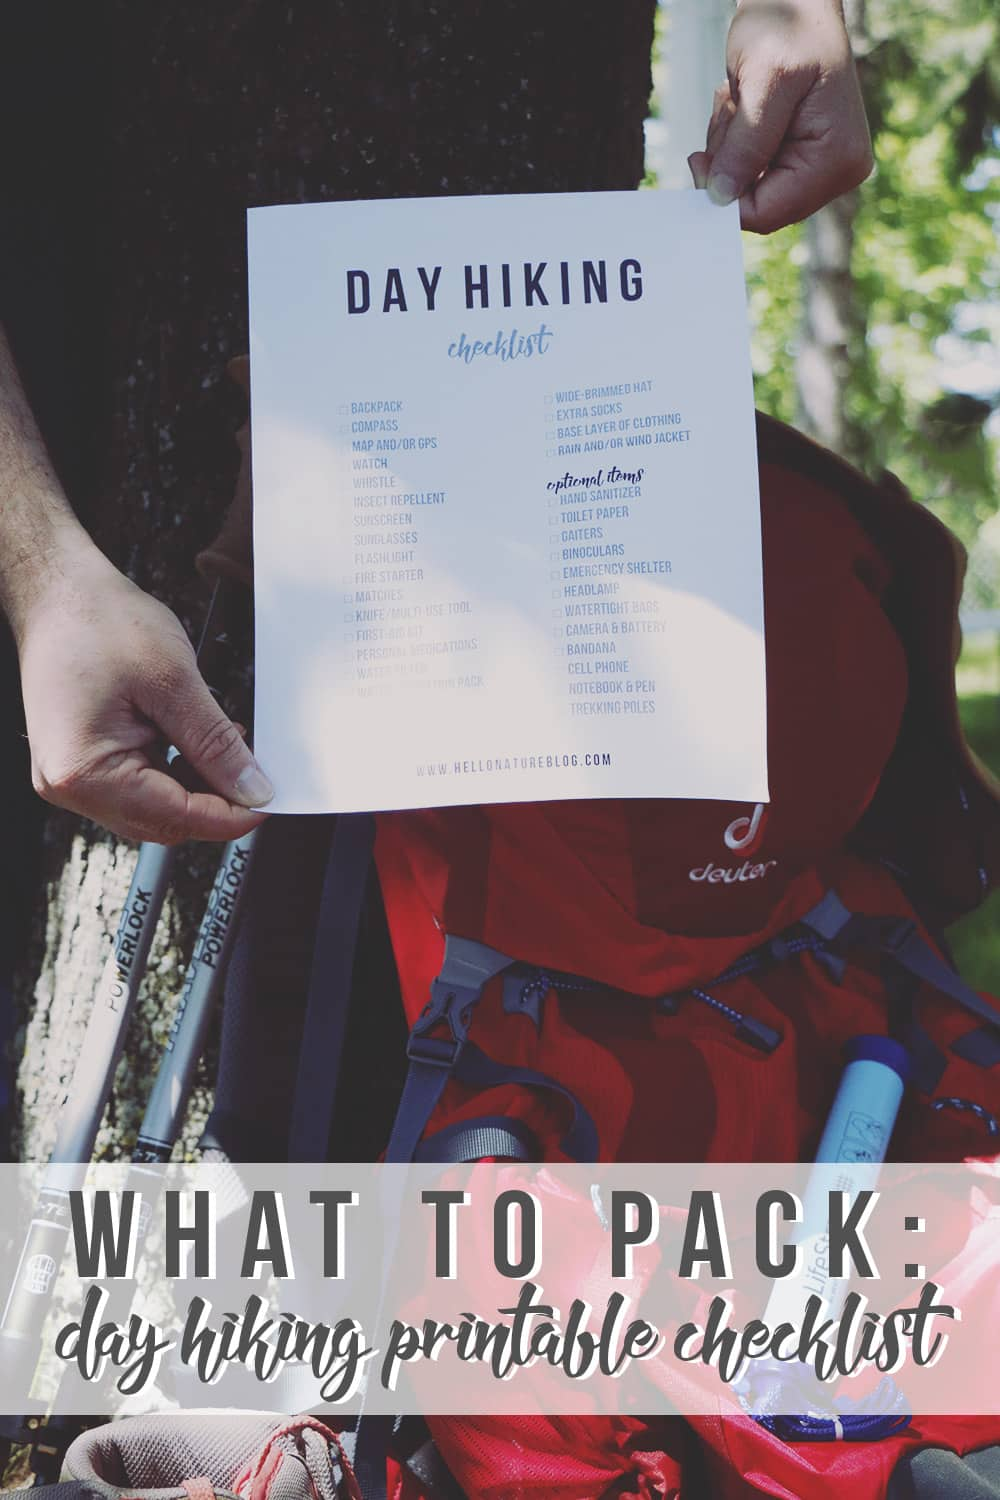 Hiking for the day? Be sure to check off this day hiking printable checklist before you go outdoors to make sure you bring all of the essentials!